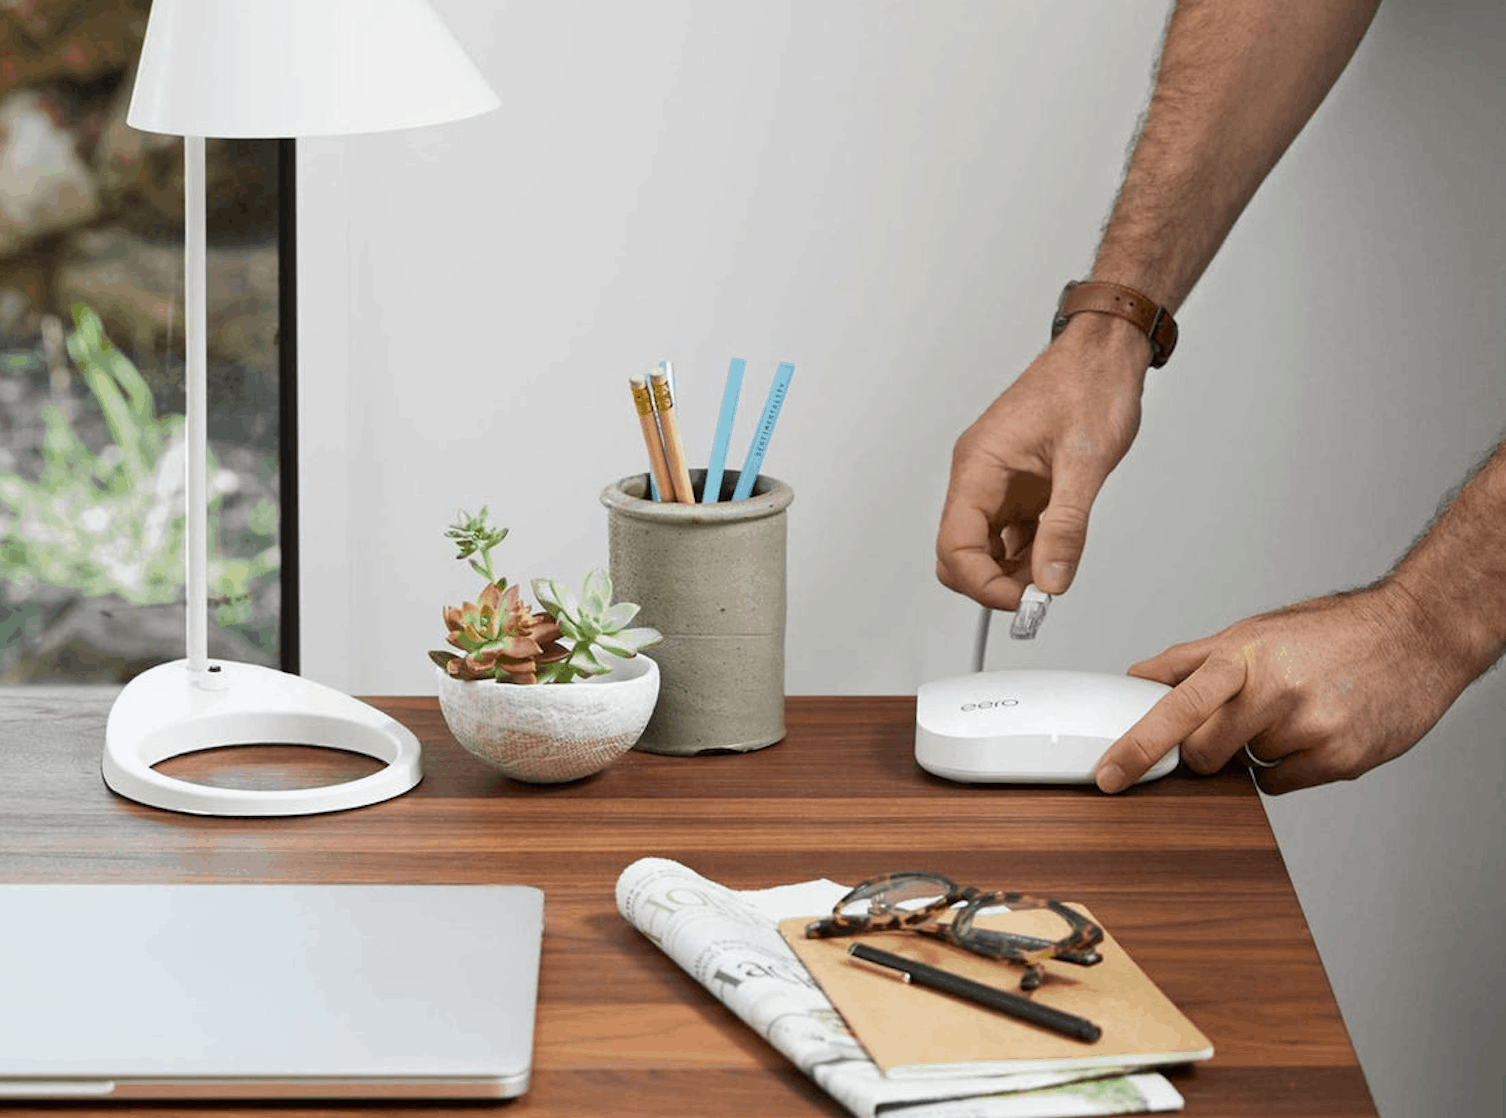 Upgrade to the Eero Pro Mesh Wi-Fi System and Save As Much as $100